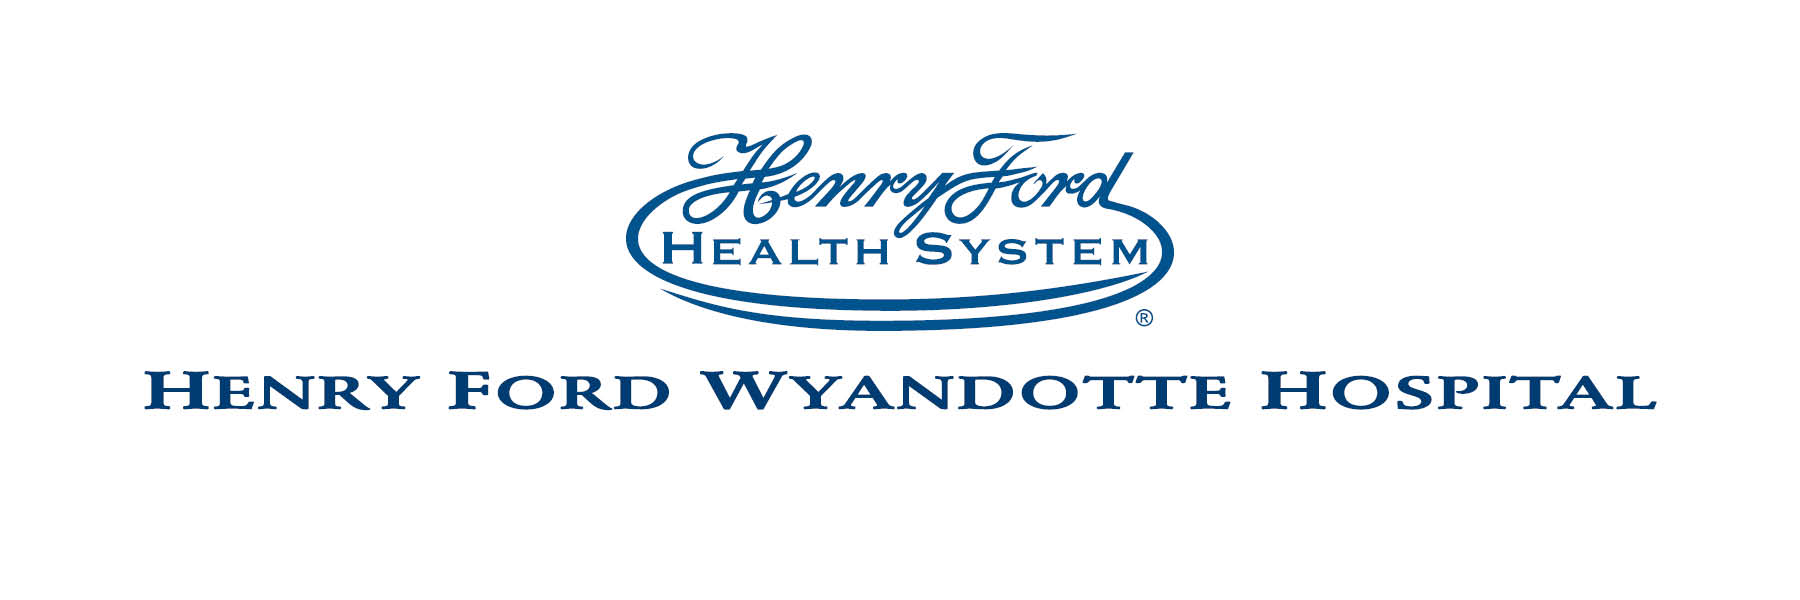 Henry_Ford_Wyandotte_Hospital_Centered_1_line_PMS_541 (002).jpg